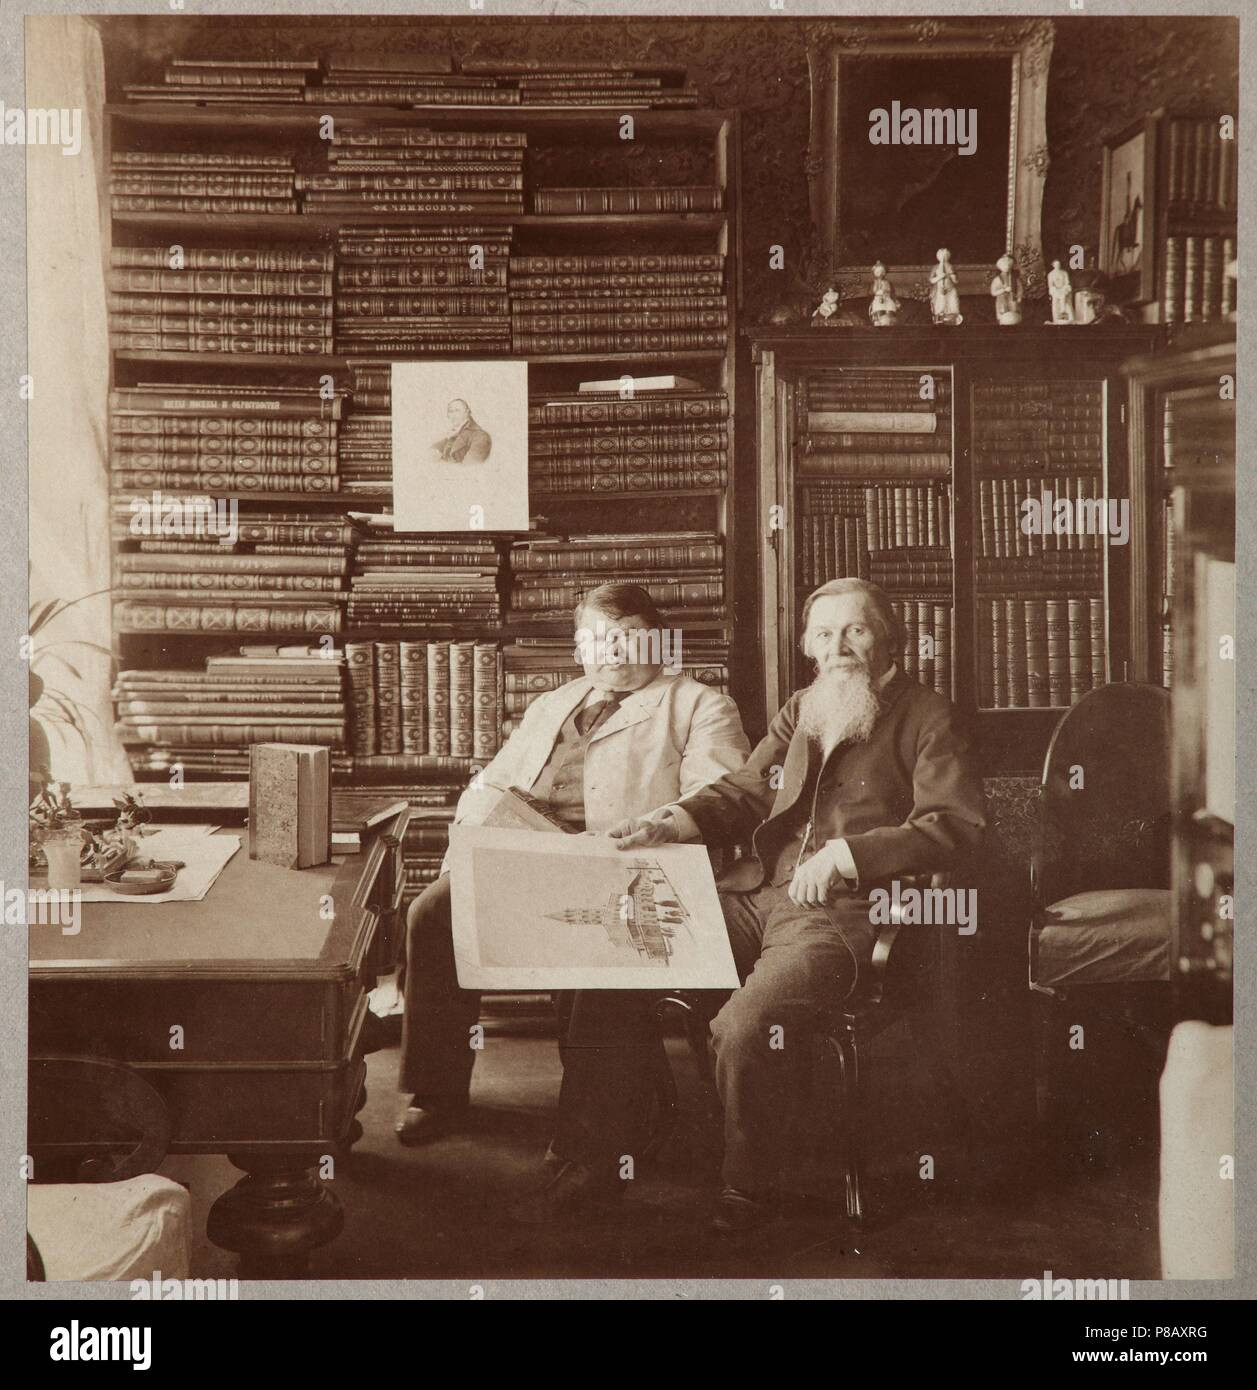 Pyotr Alexandrovich Yefremov and Alexey Petrovich Bakhrushin. Museum: Russian State Archive of Literature and Art, Moscow. - Stock Image